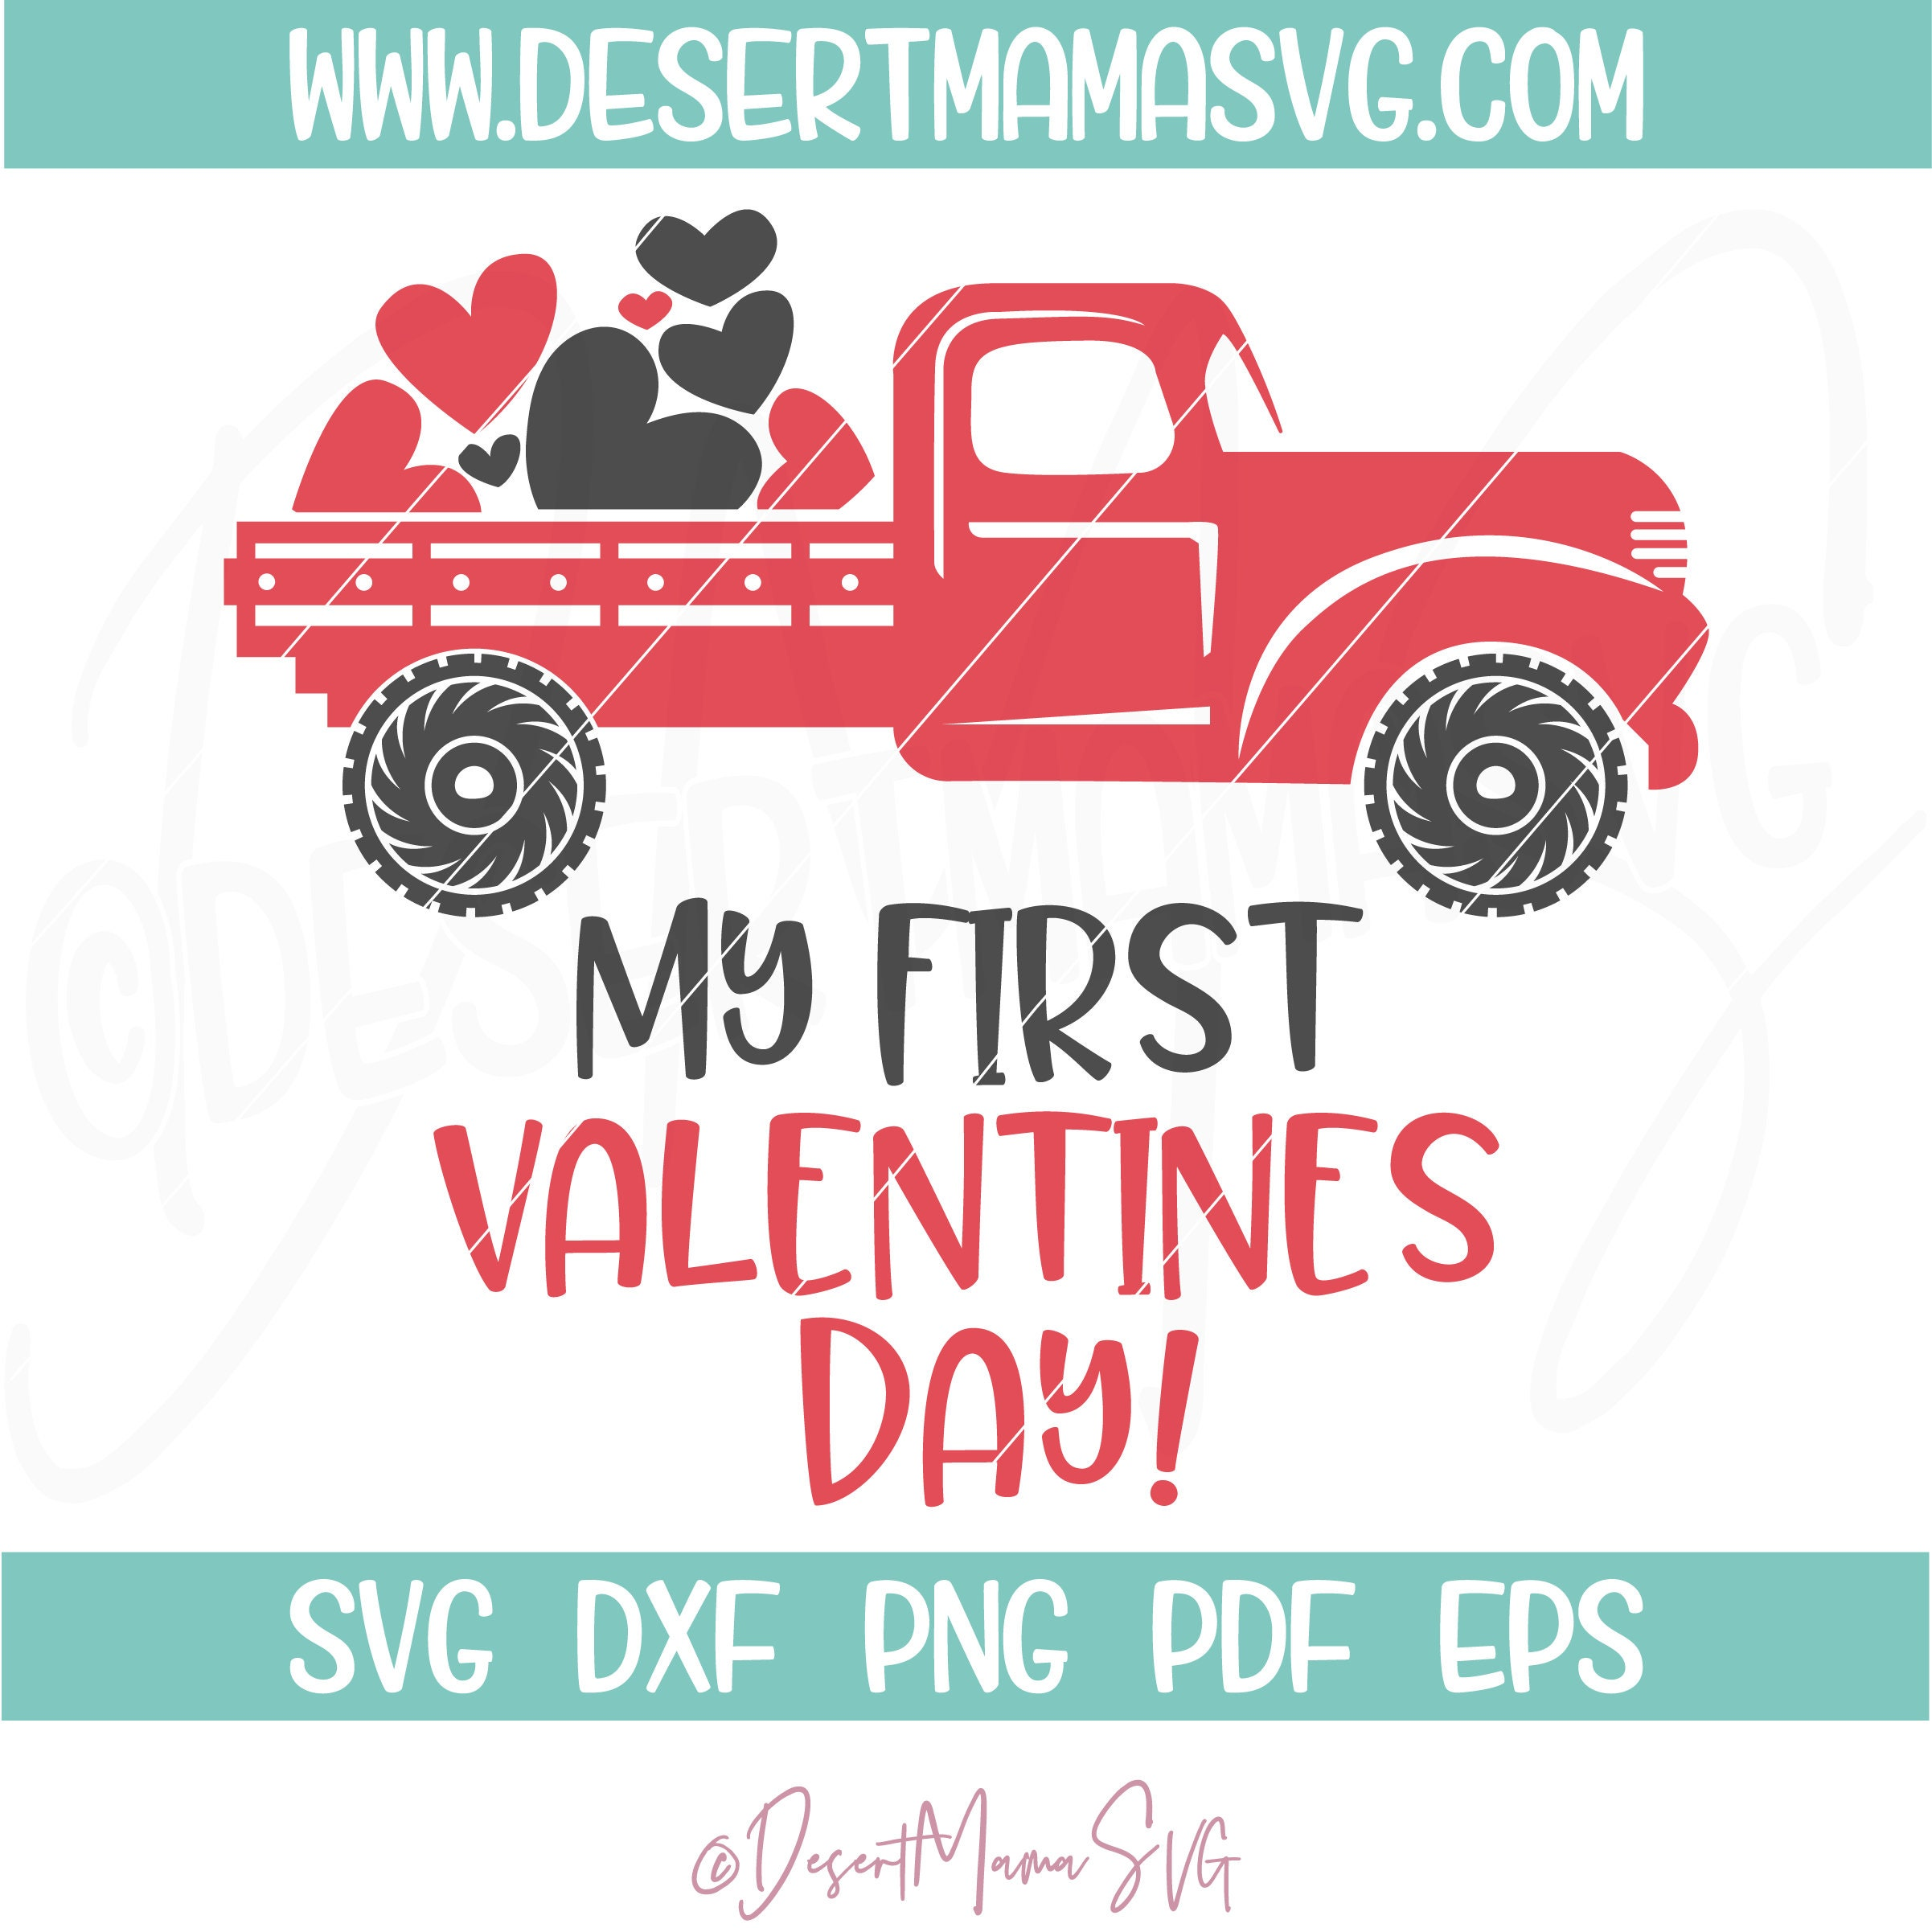 My First Valentines Day Svg Eps Dxf Png Cricut Or Cameo Scan N